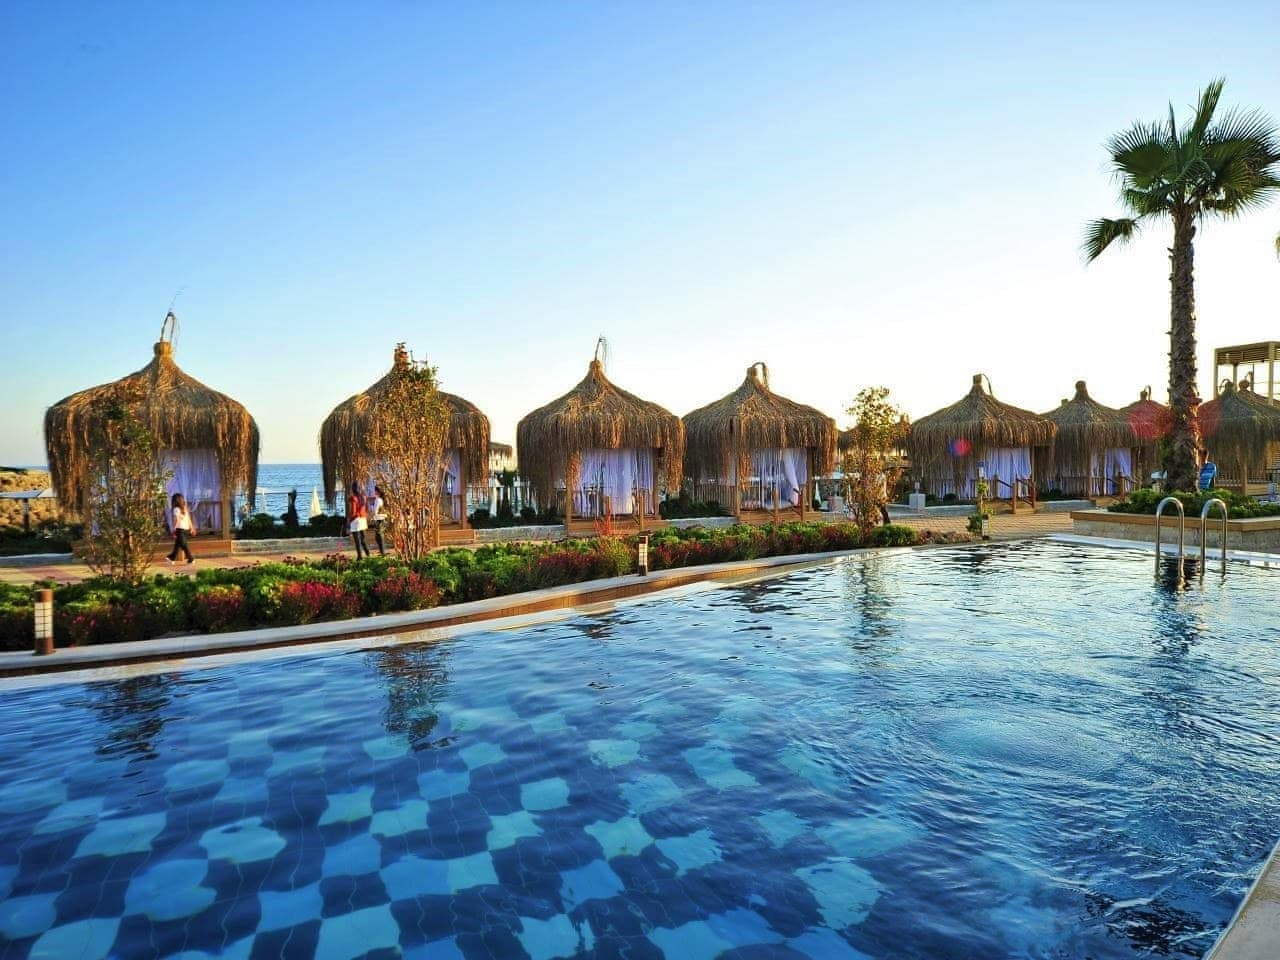 adenya resort ummahtrip halal holidays